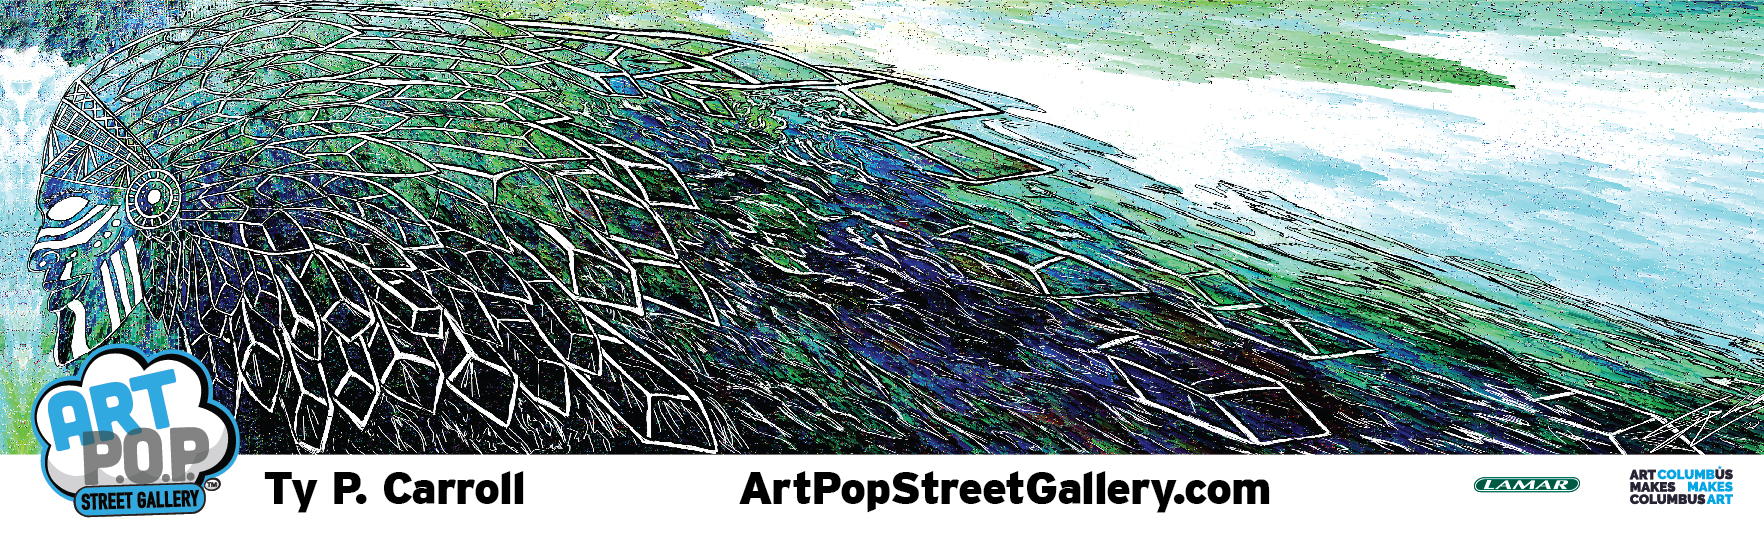 To contact this artist:  typcarroll.com